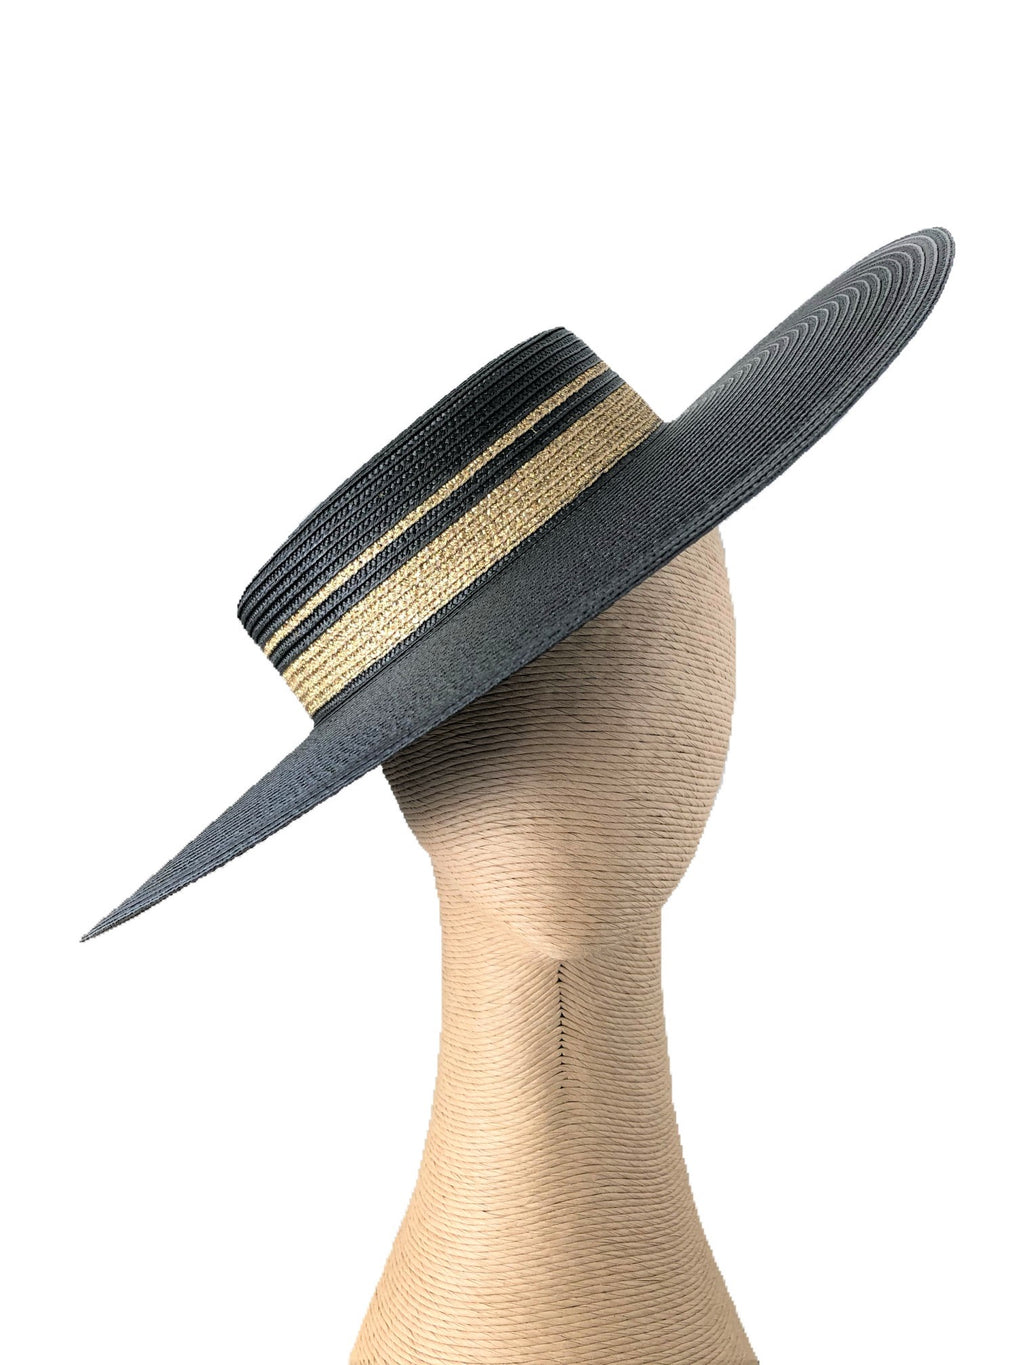 Morgan & Taylor Athena Boater Hat in Black & Gold